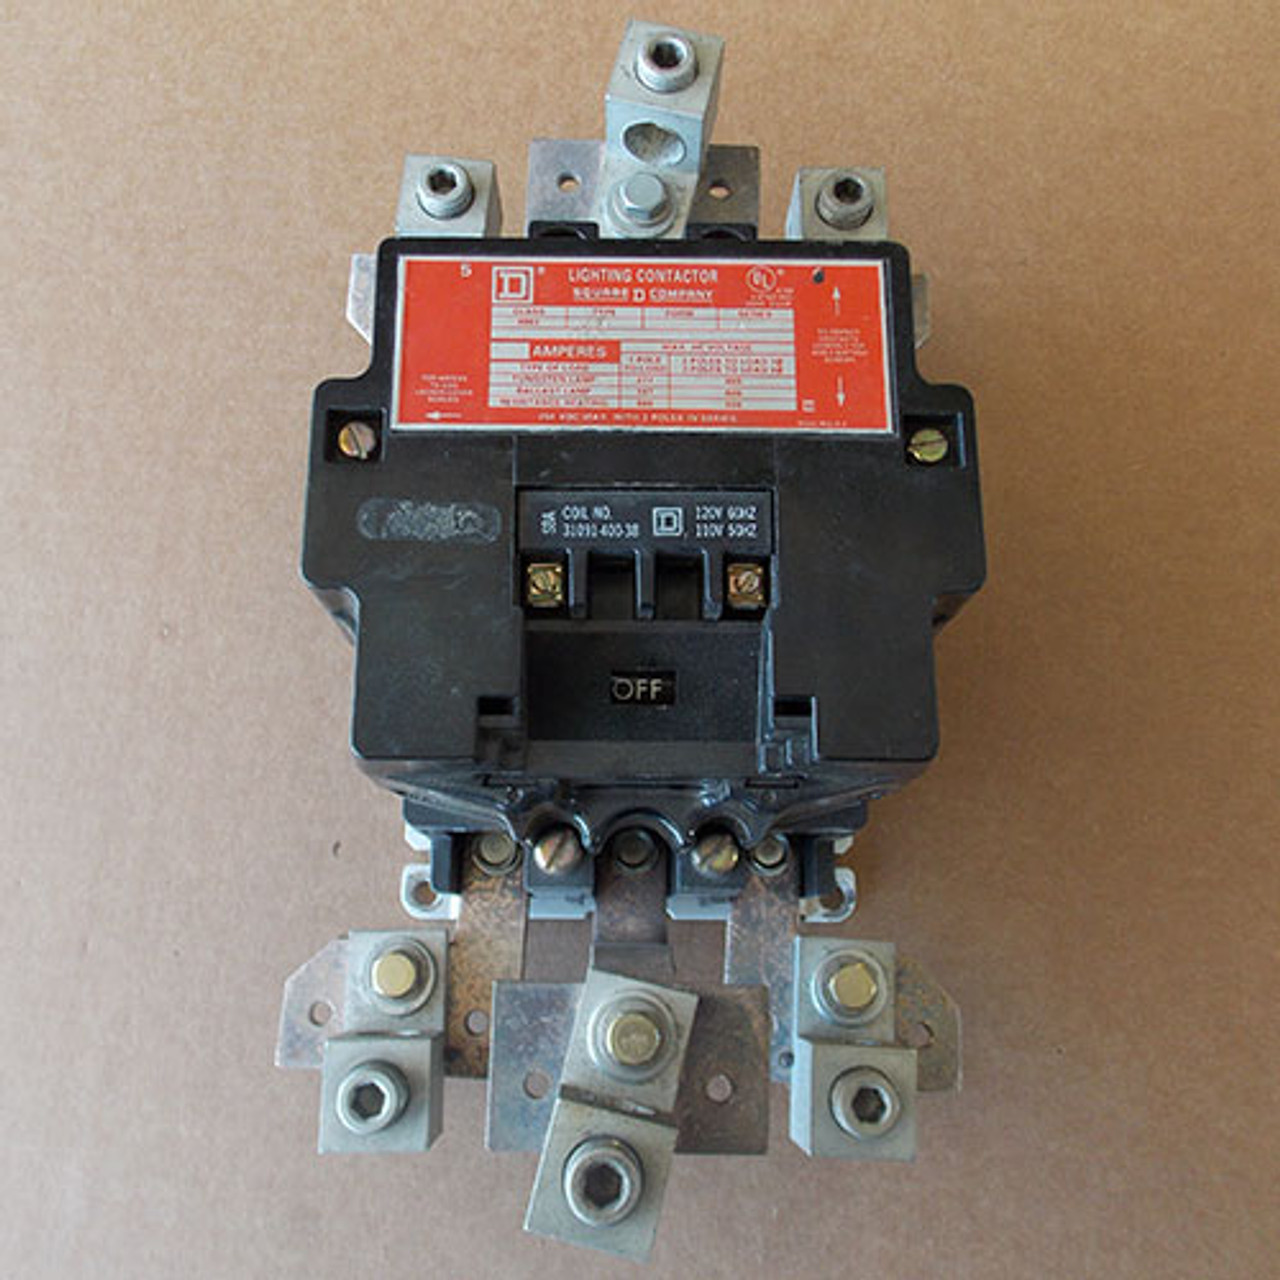 Square D 8903 S003 Magnetic Contactor 200 Amp 3 Pole 120 Volt Coil - Used